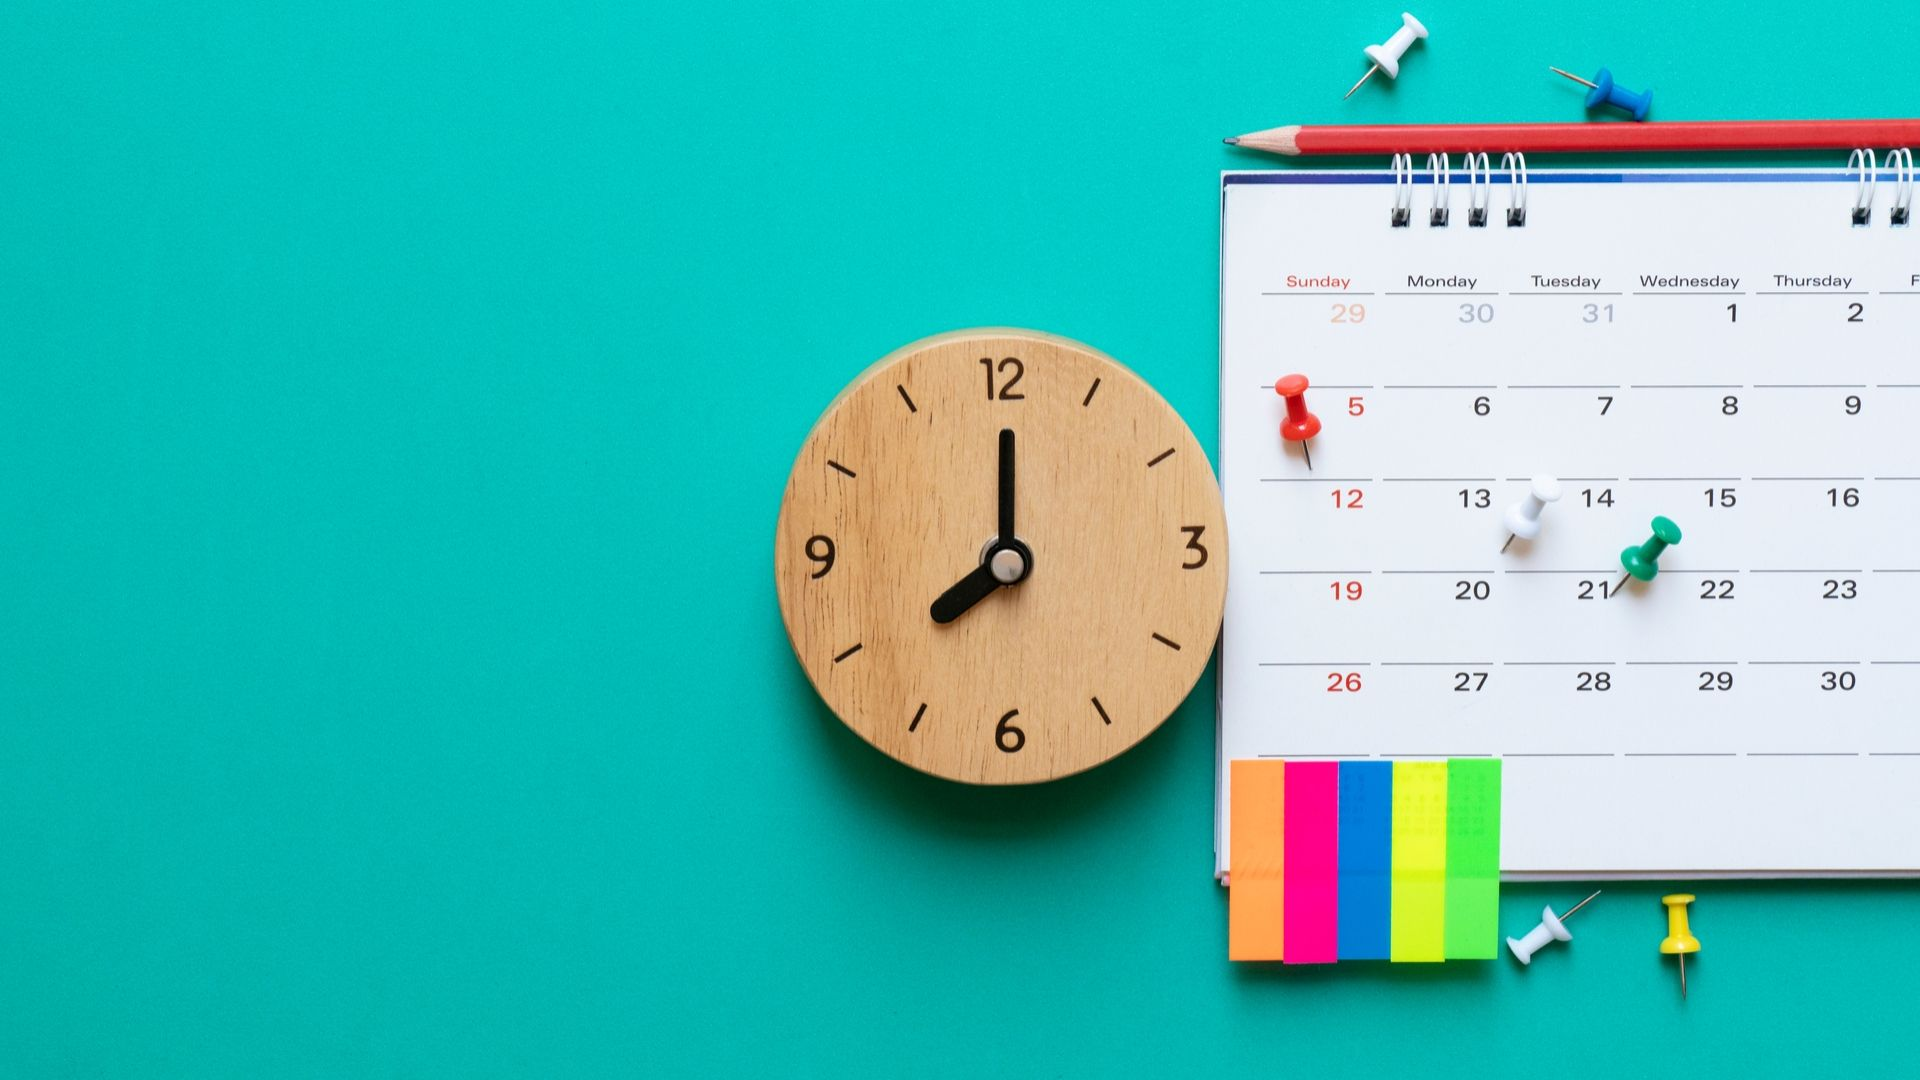 desk calendar, small wooden clock, drawing pins and coloured labels on a teal background